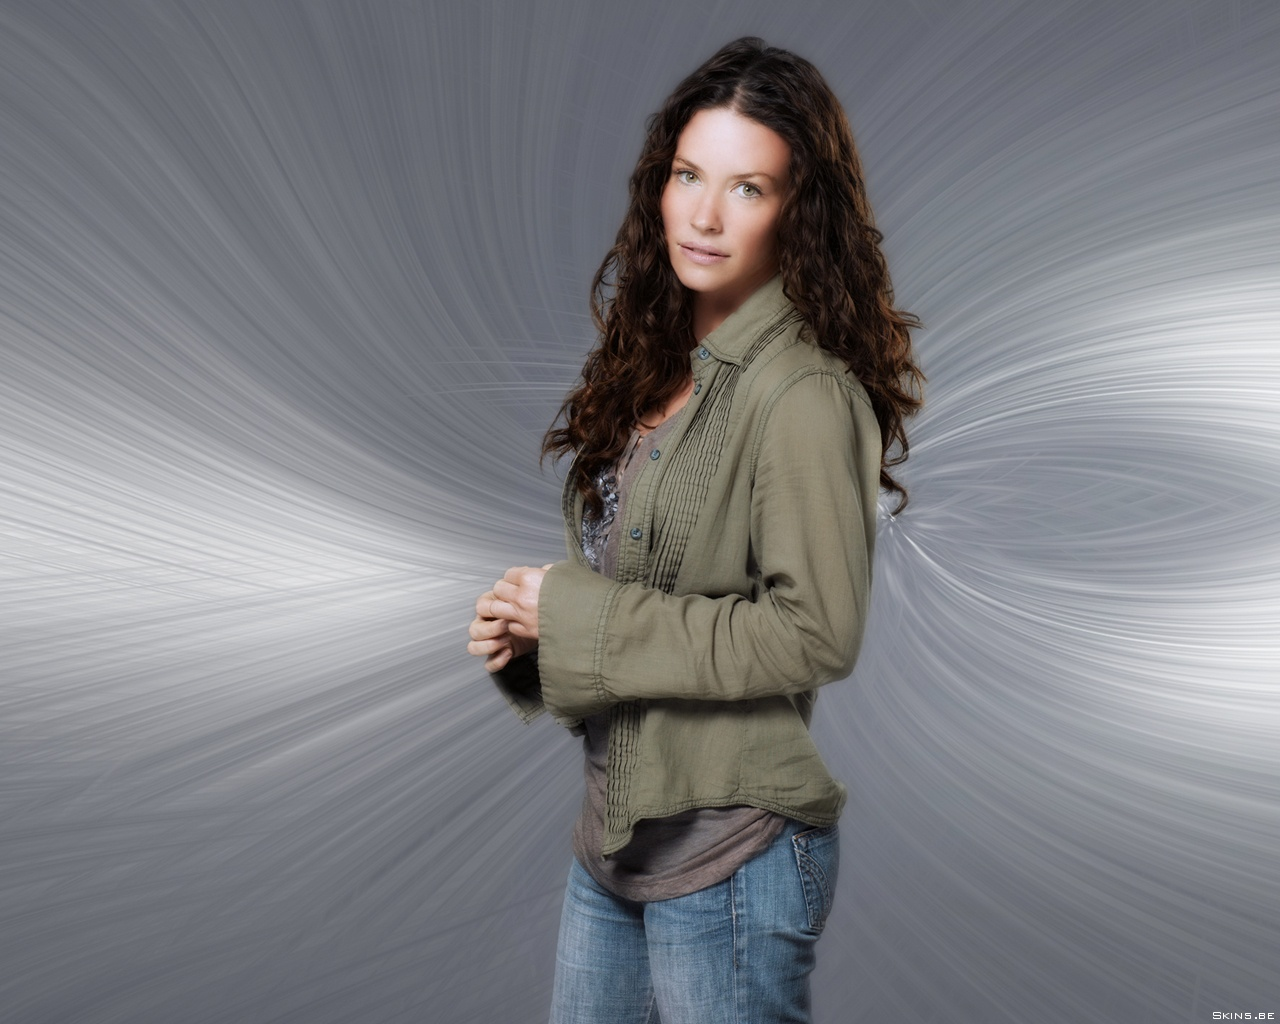 Evangeline Lilly wallpaper (#37729)